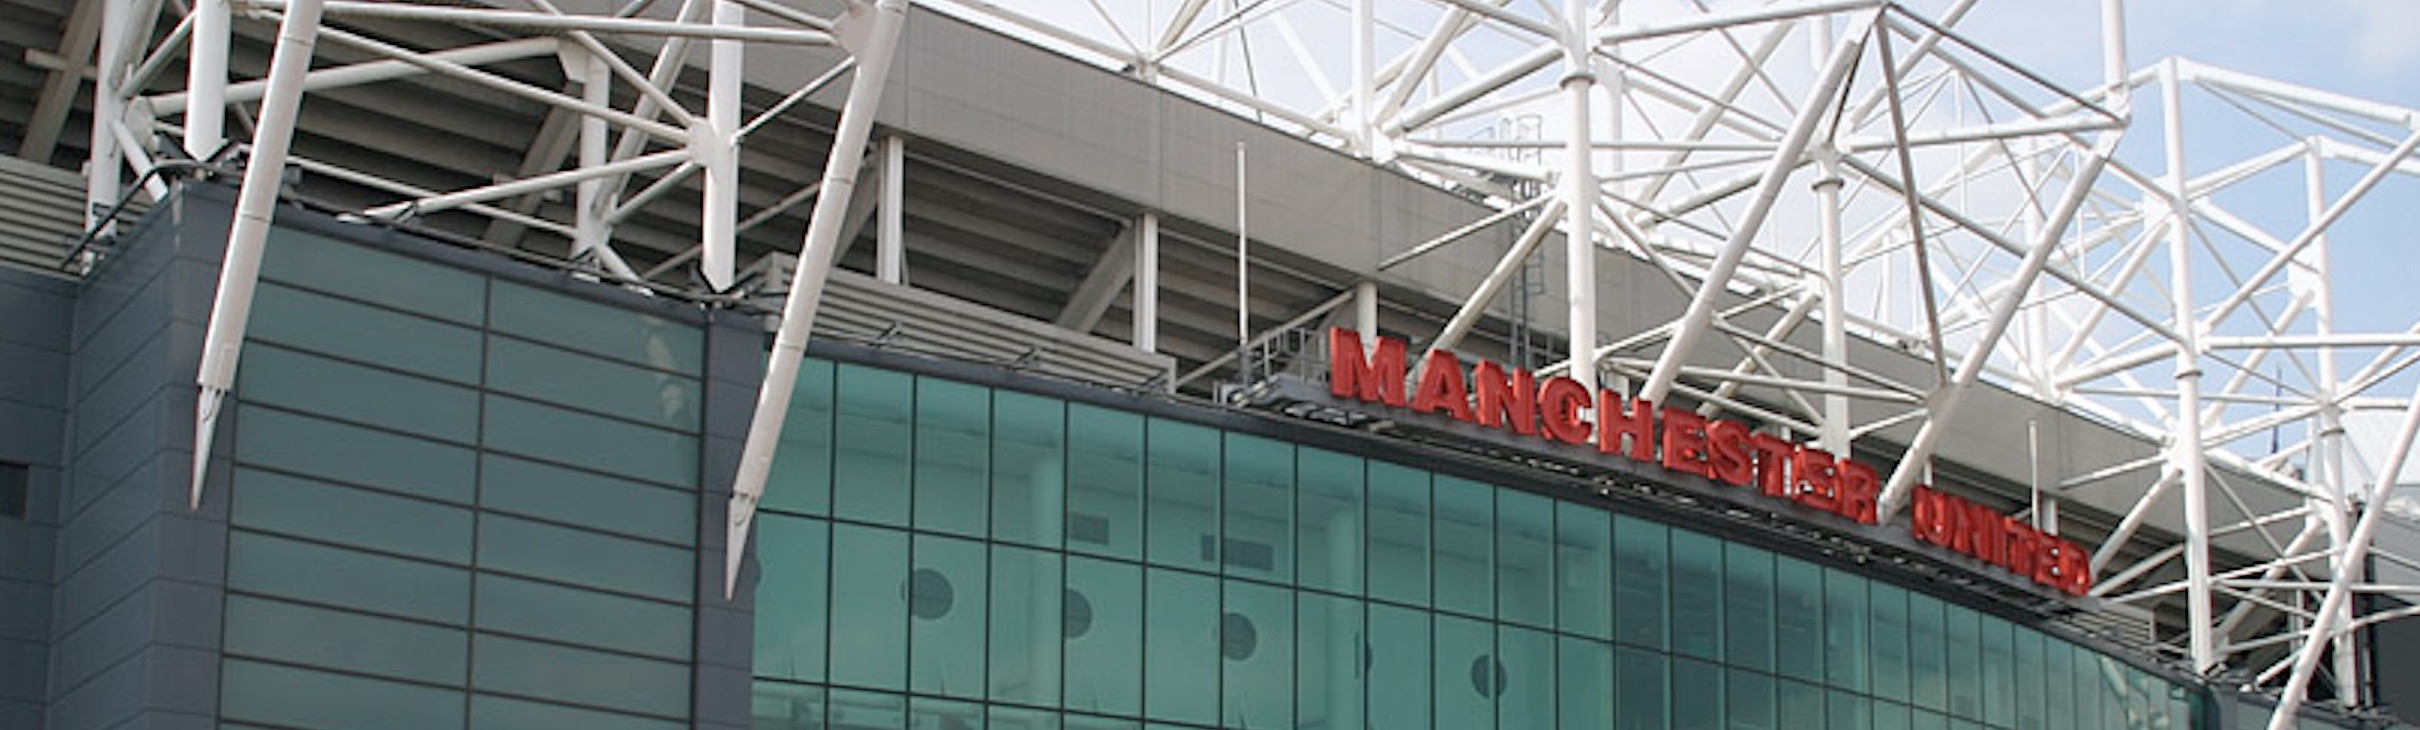 Man United V Arsenal - Daytrip by Coach & Ferry